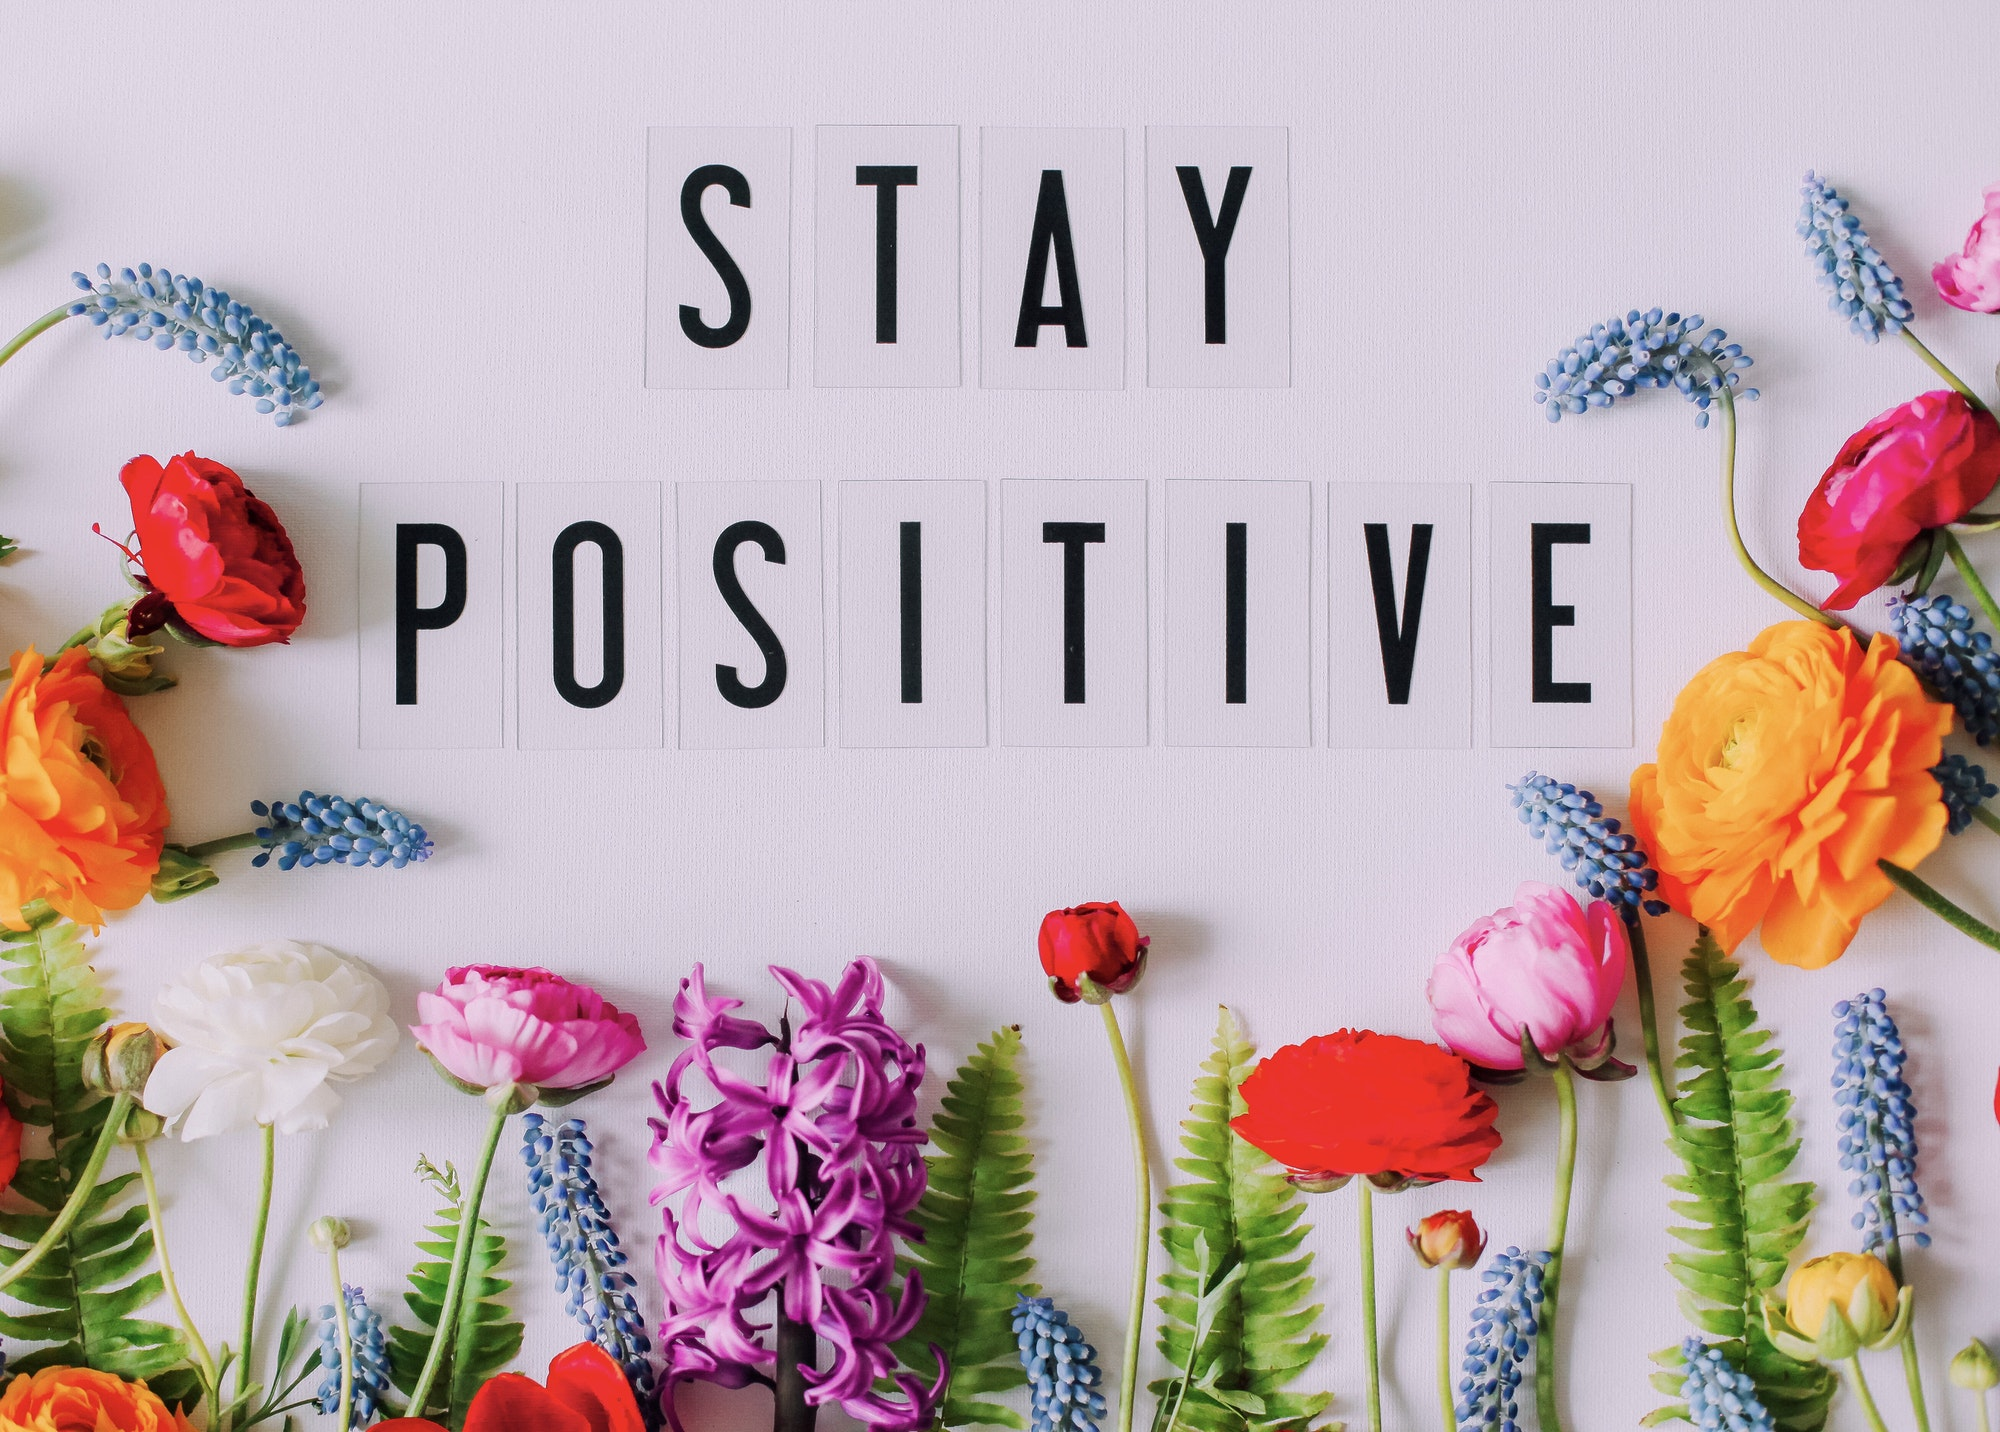 Stay positive